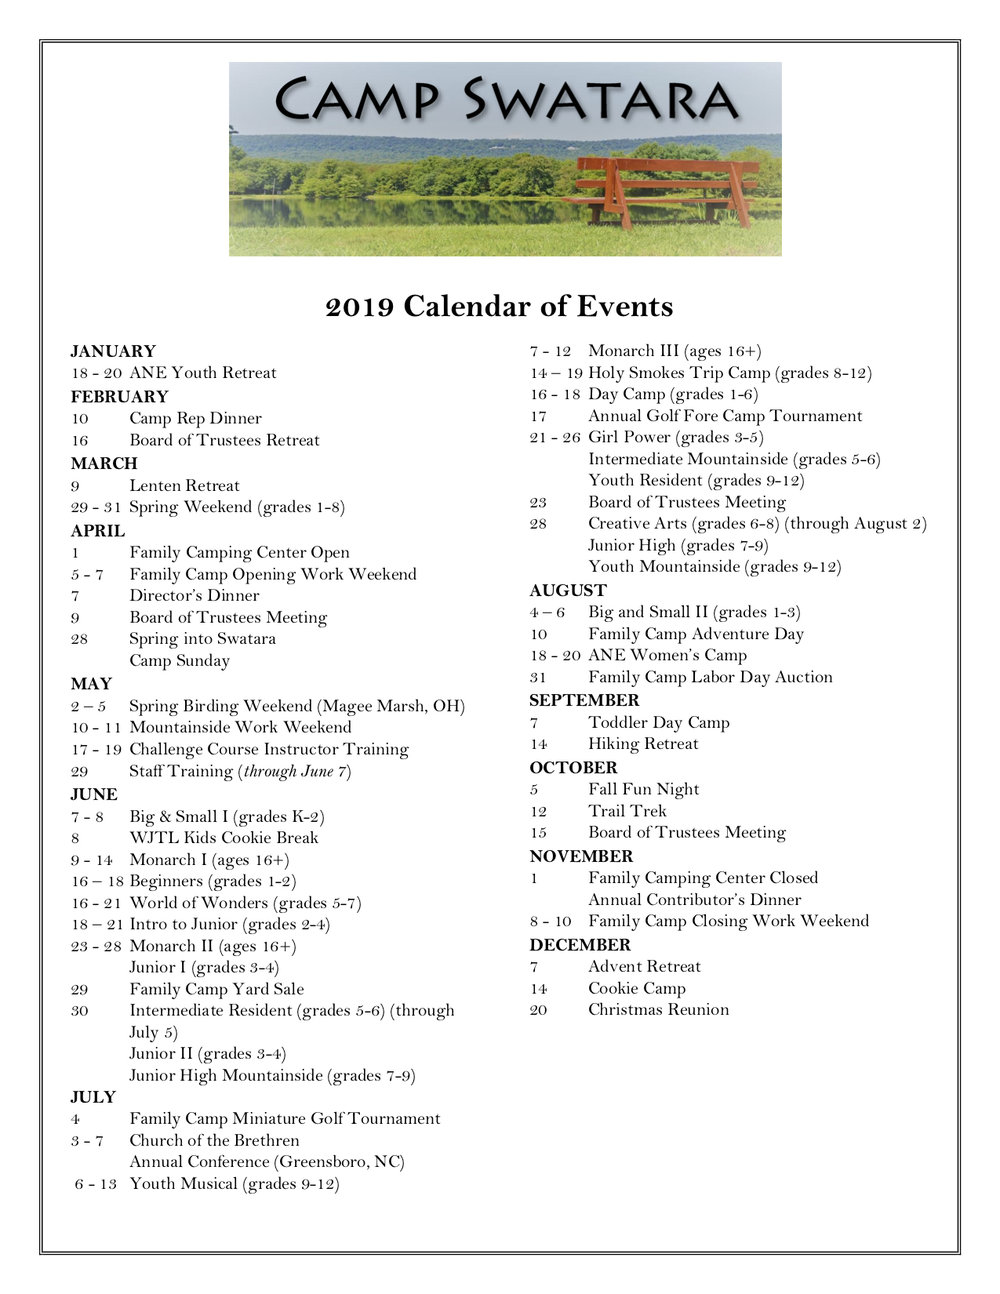 2019 Calendar of Events.jpg